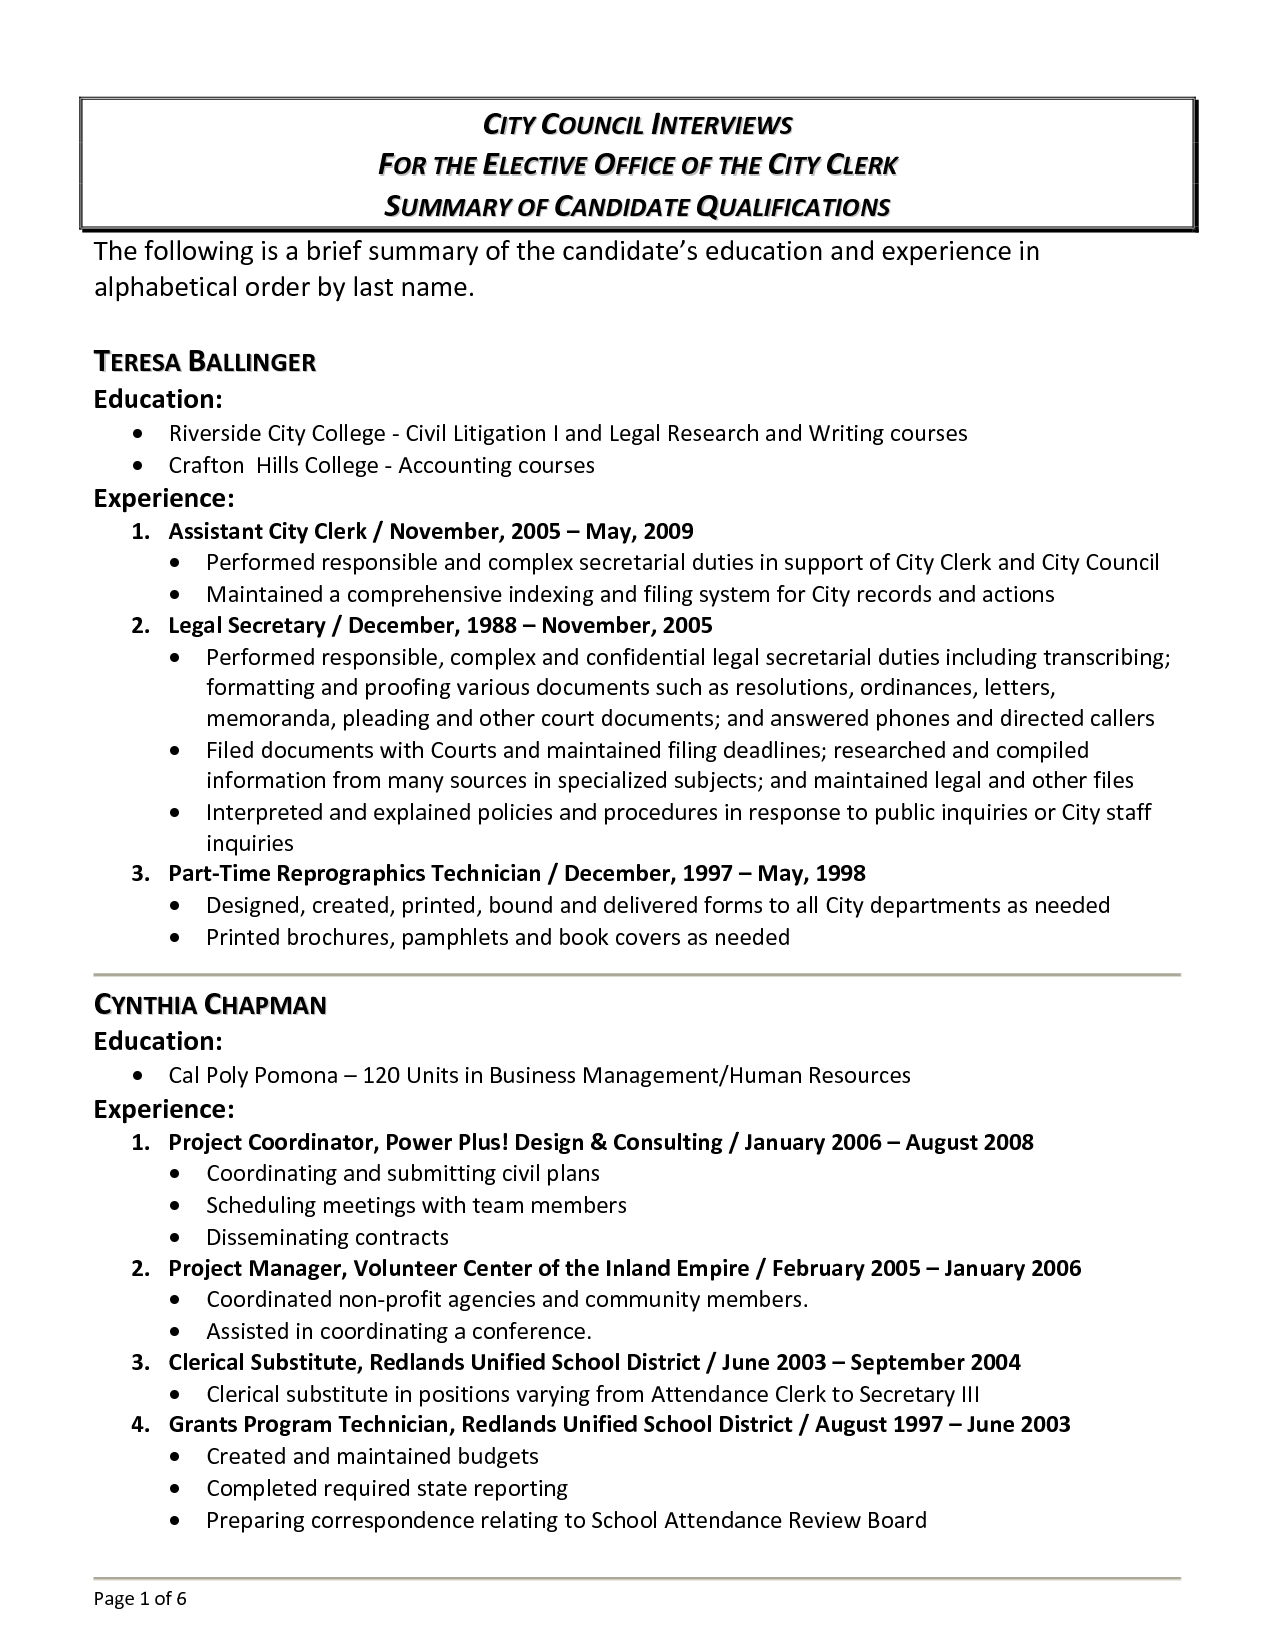 summary of qualifications how to describe yourself on your resume - Resume Qualifications